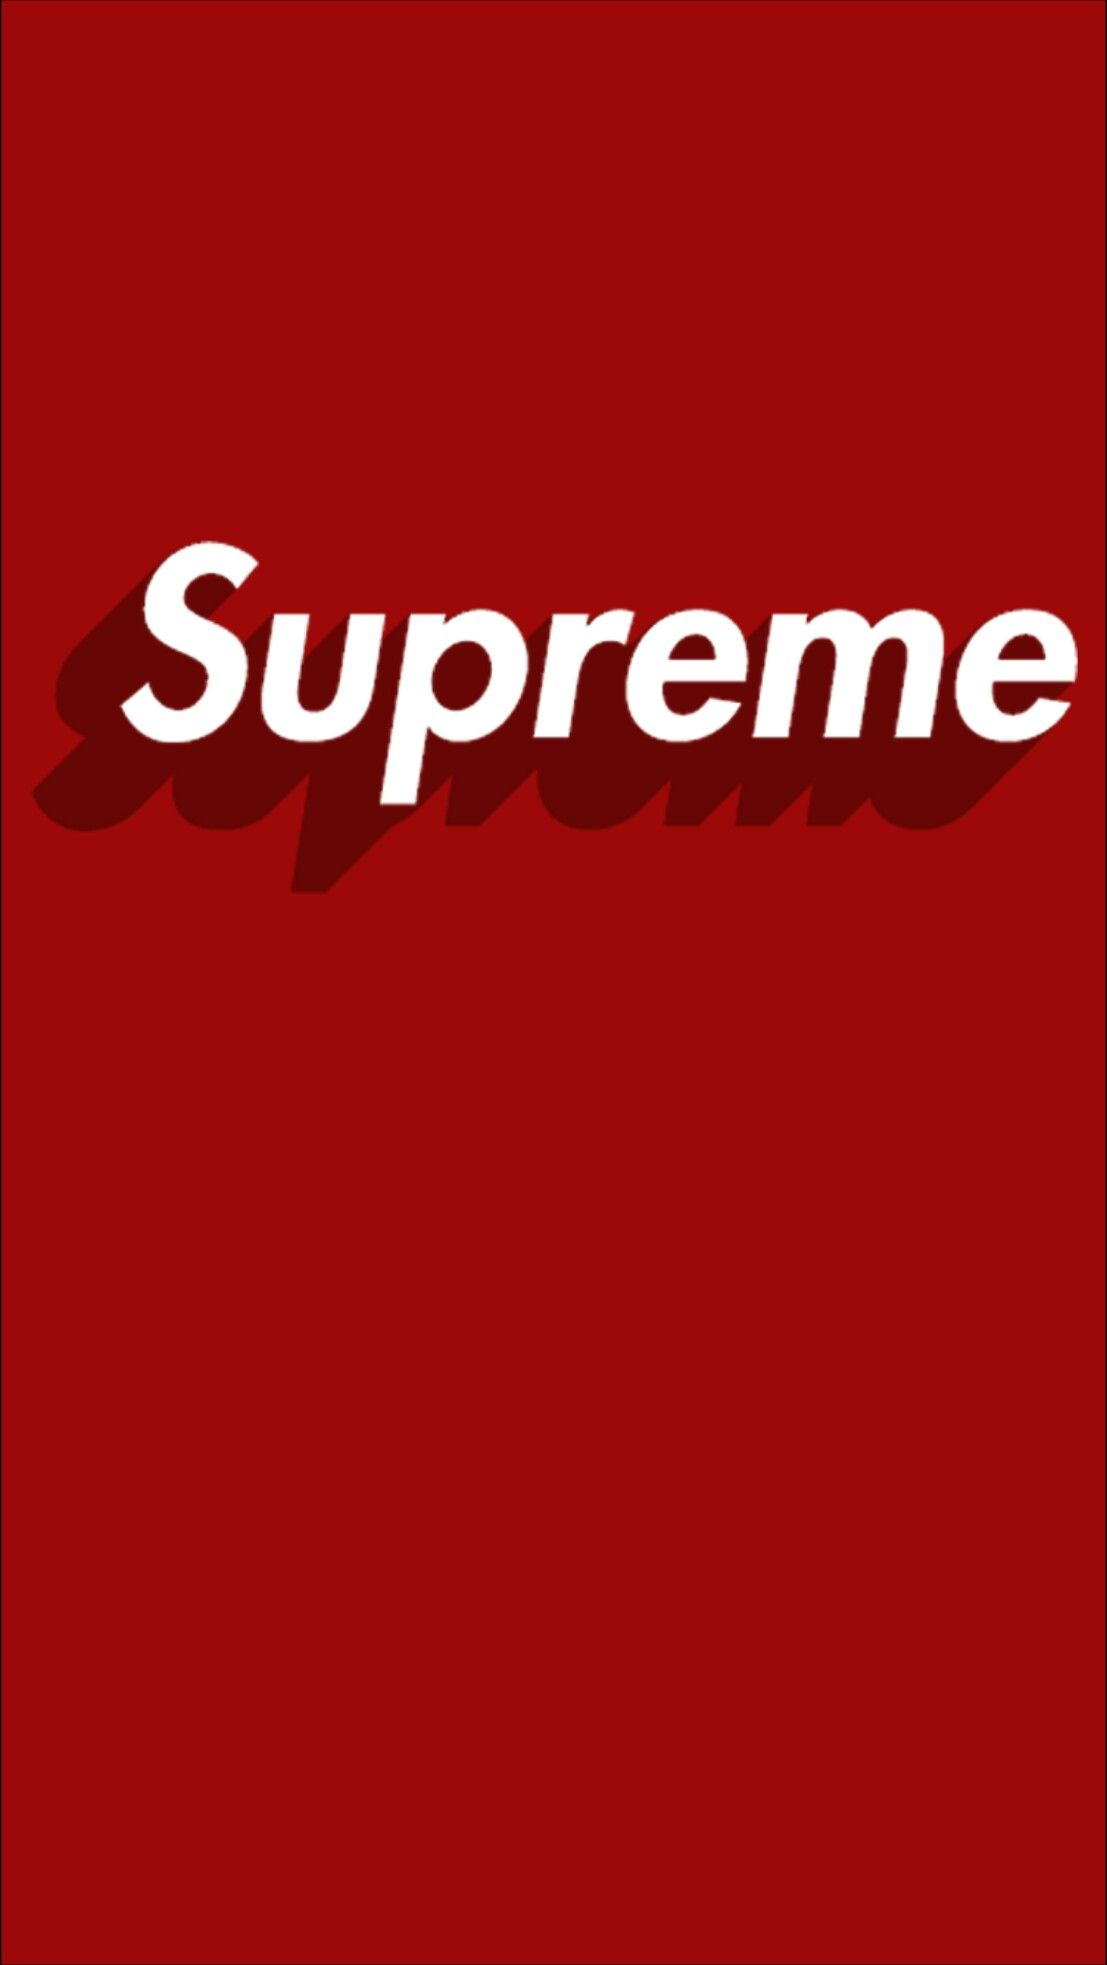 supreme gir wallpaper